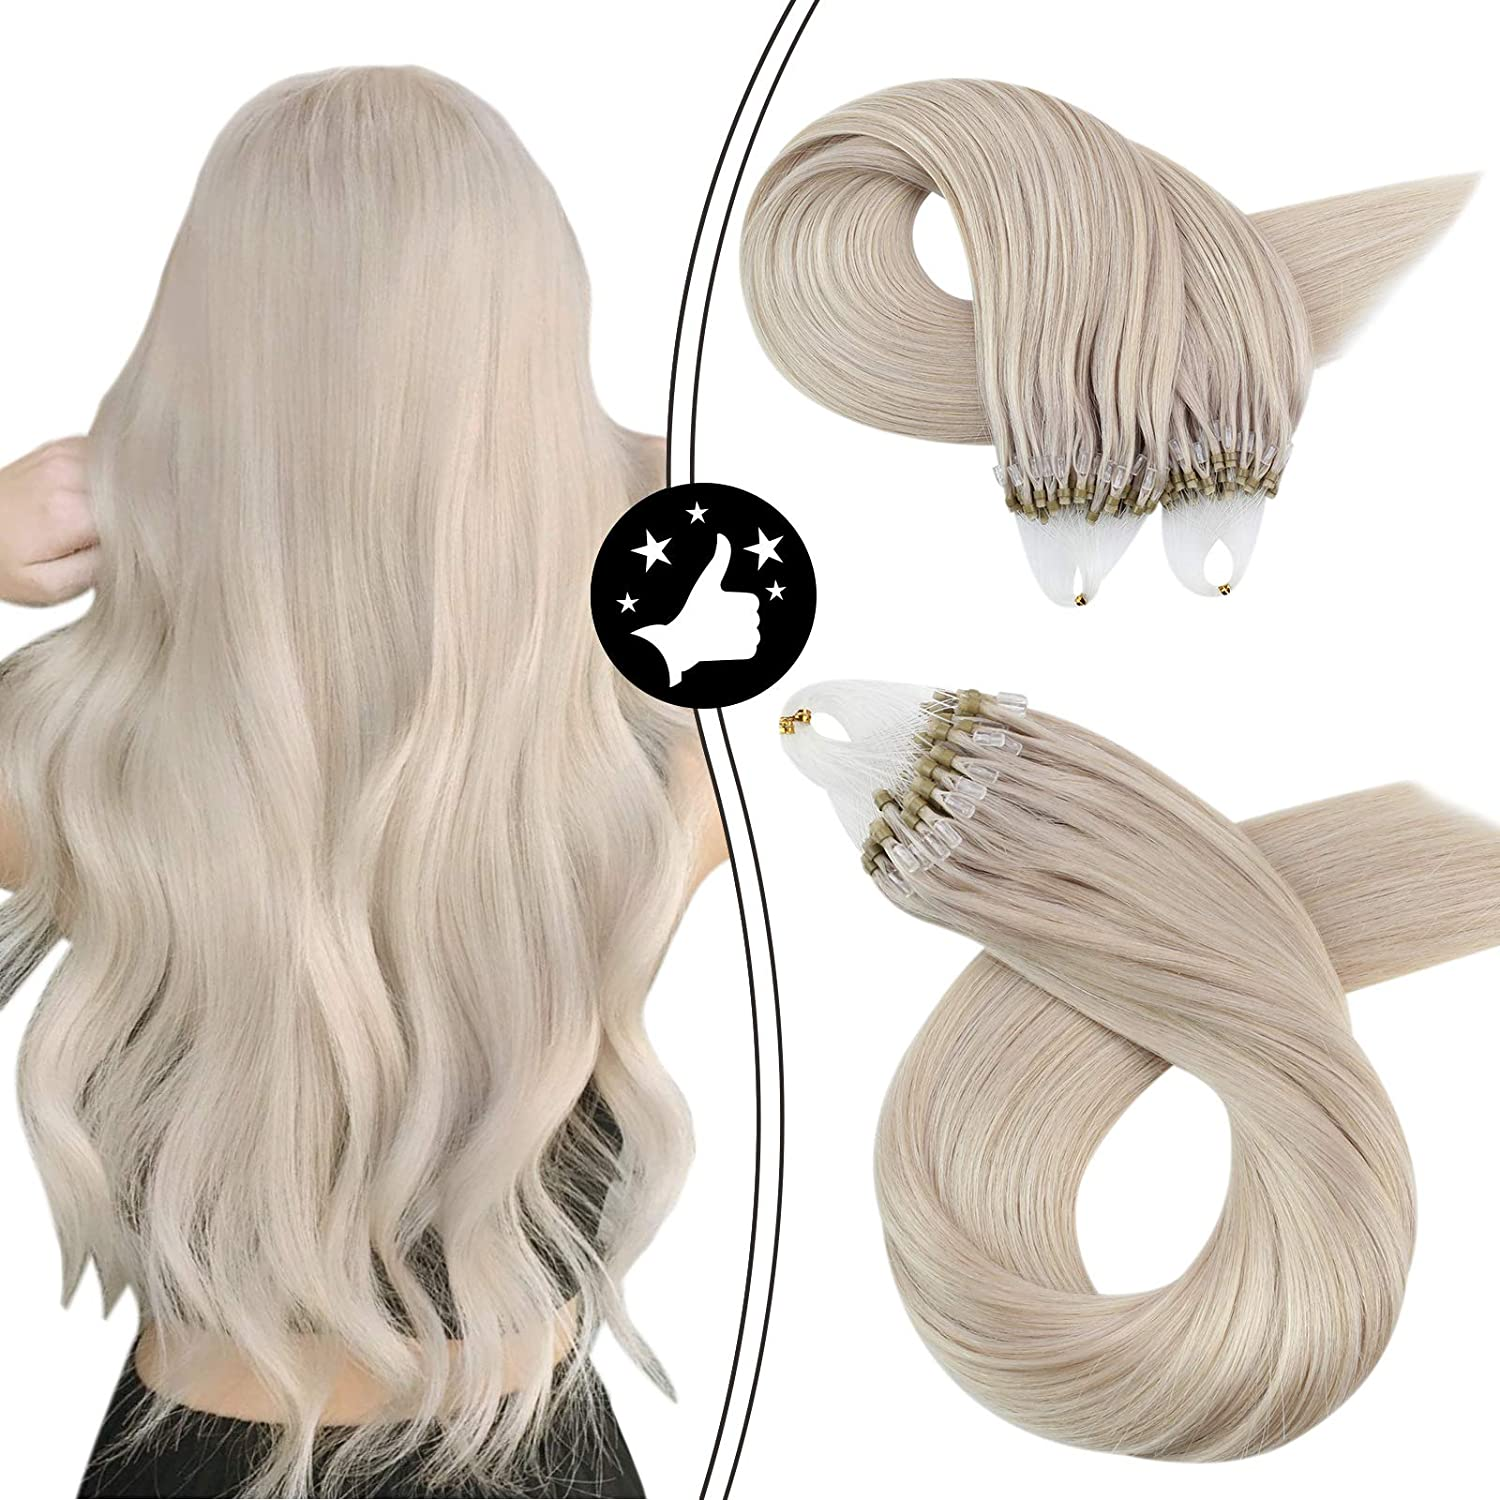 Micro Ring Human Hair Extensions Brazilian Hair 50G 50S Color #60A White Blonde Machine Remy Microlink Extensions For Women